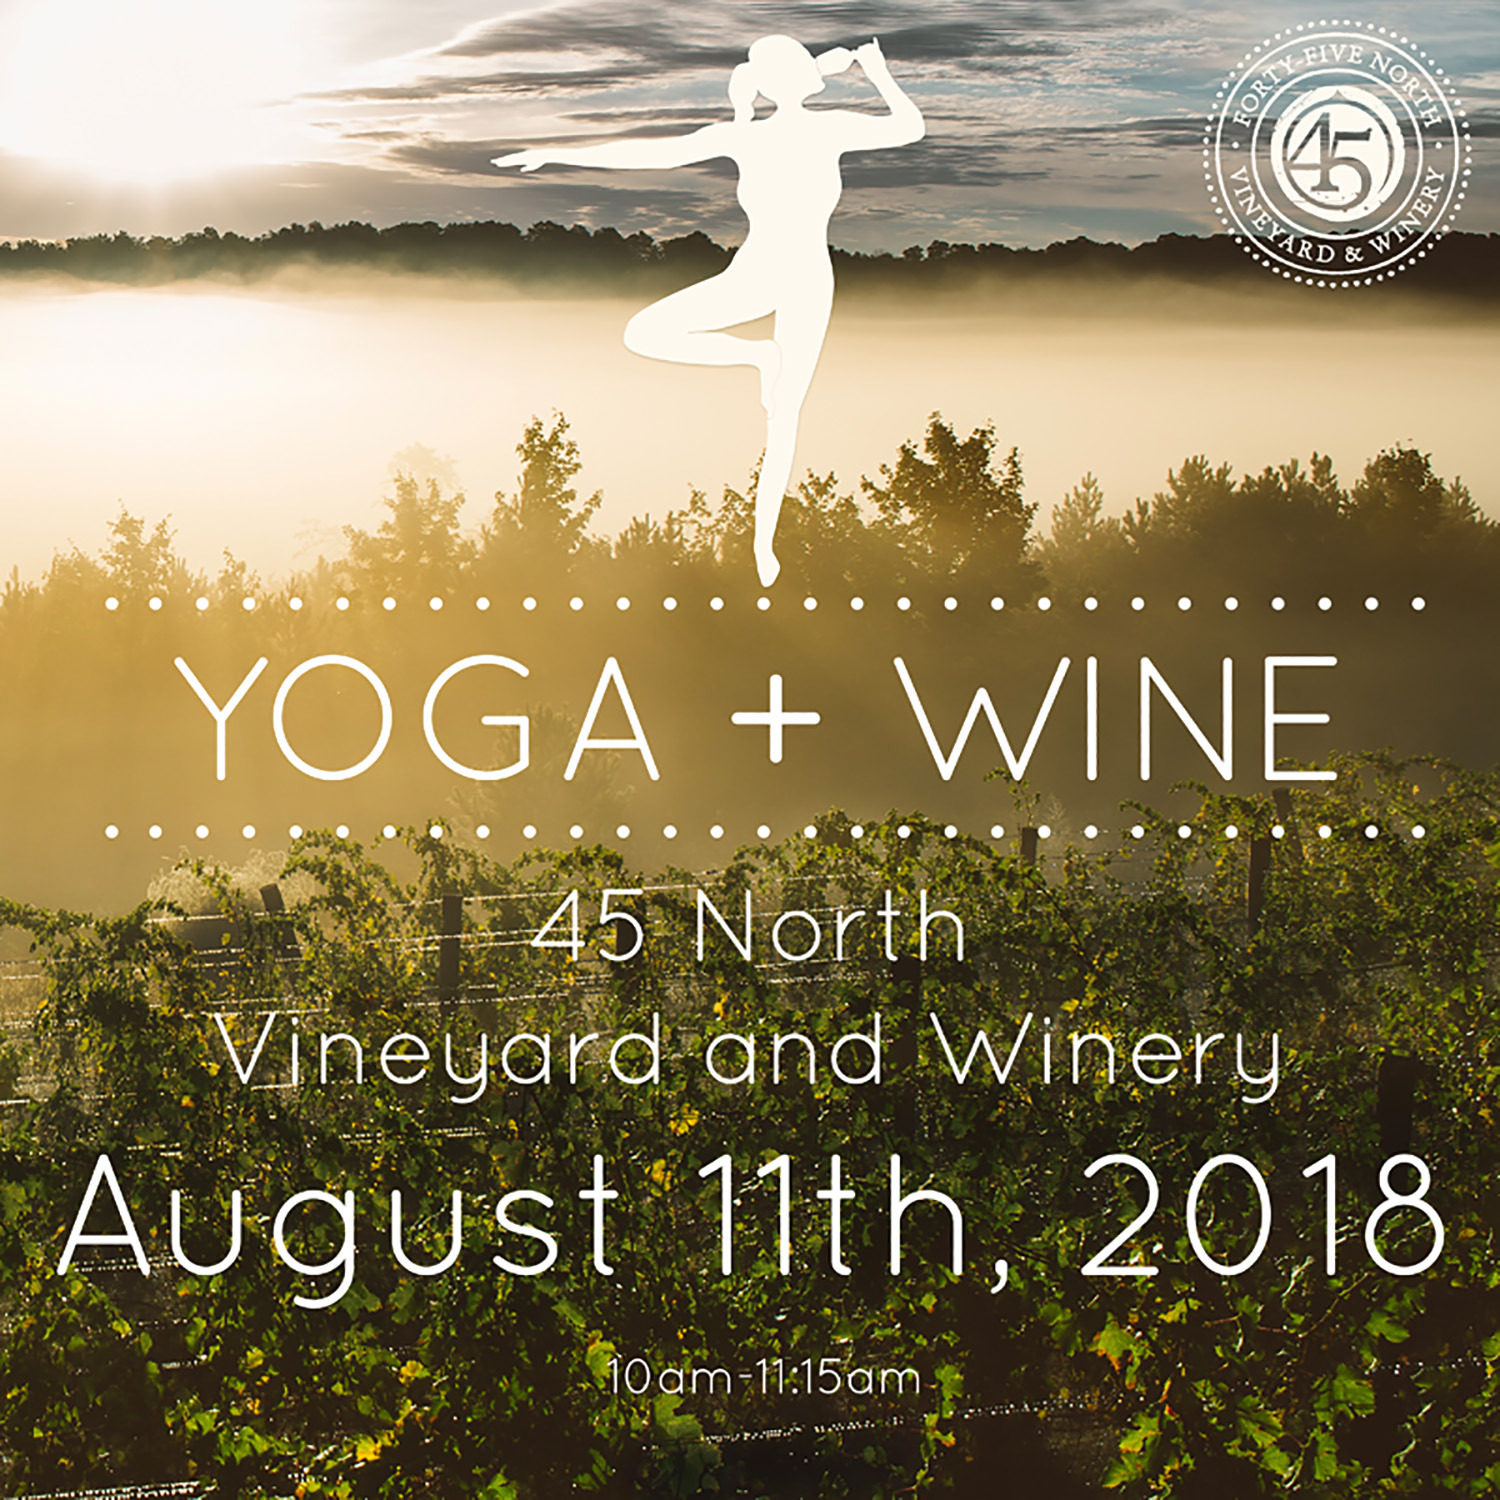 Yoga Only August 11th